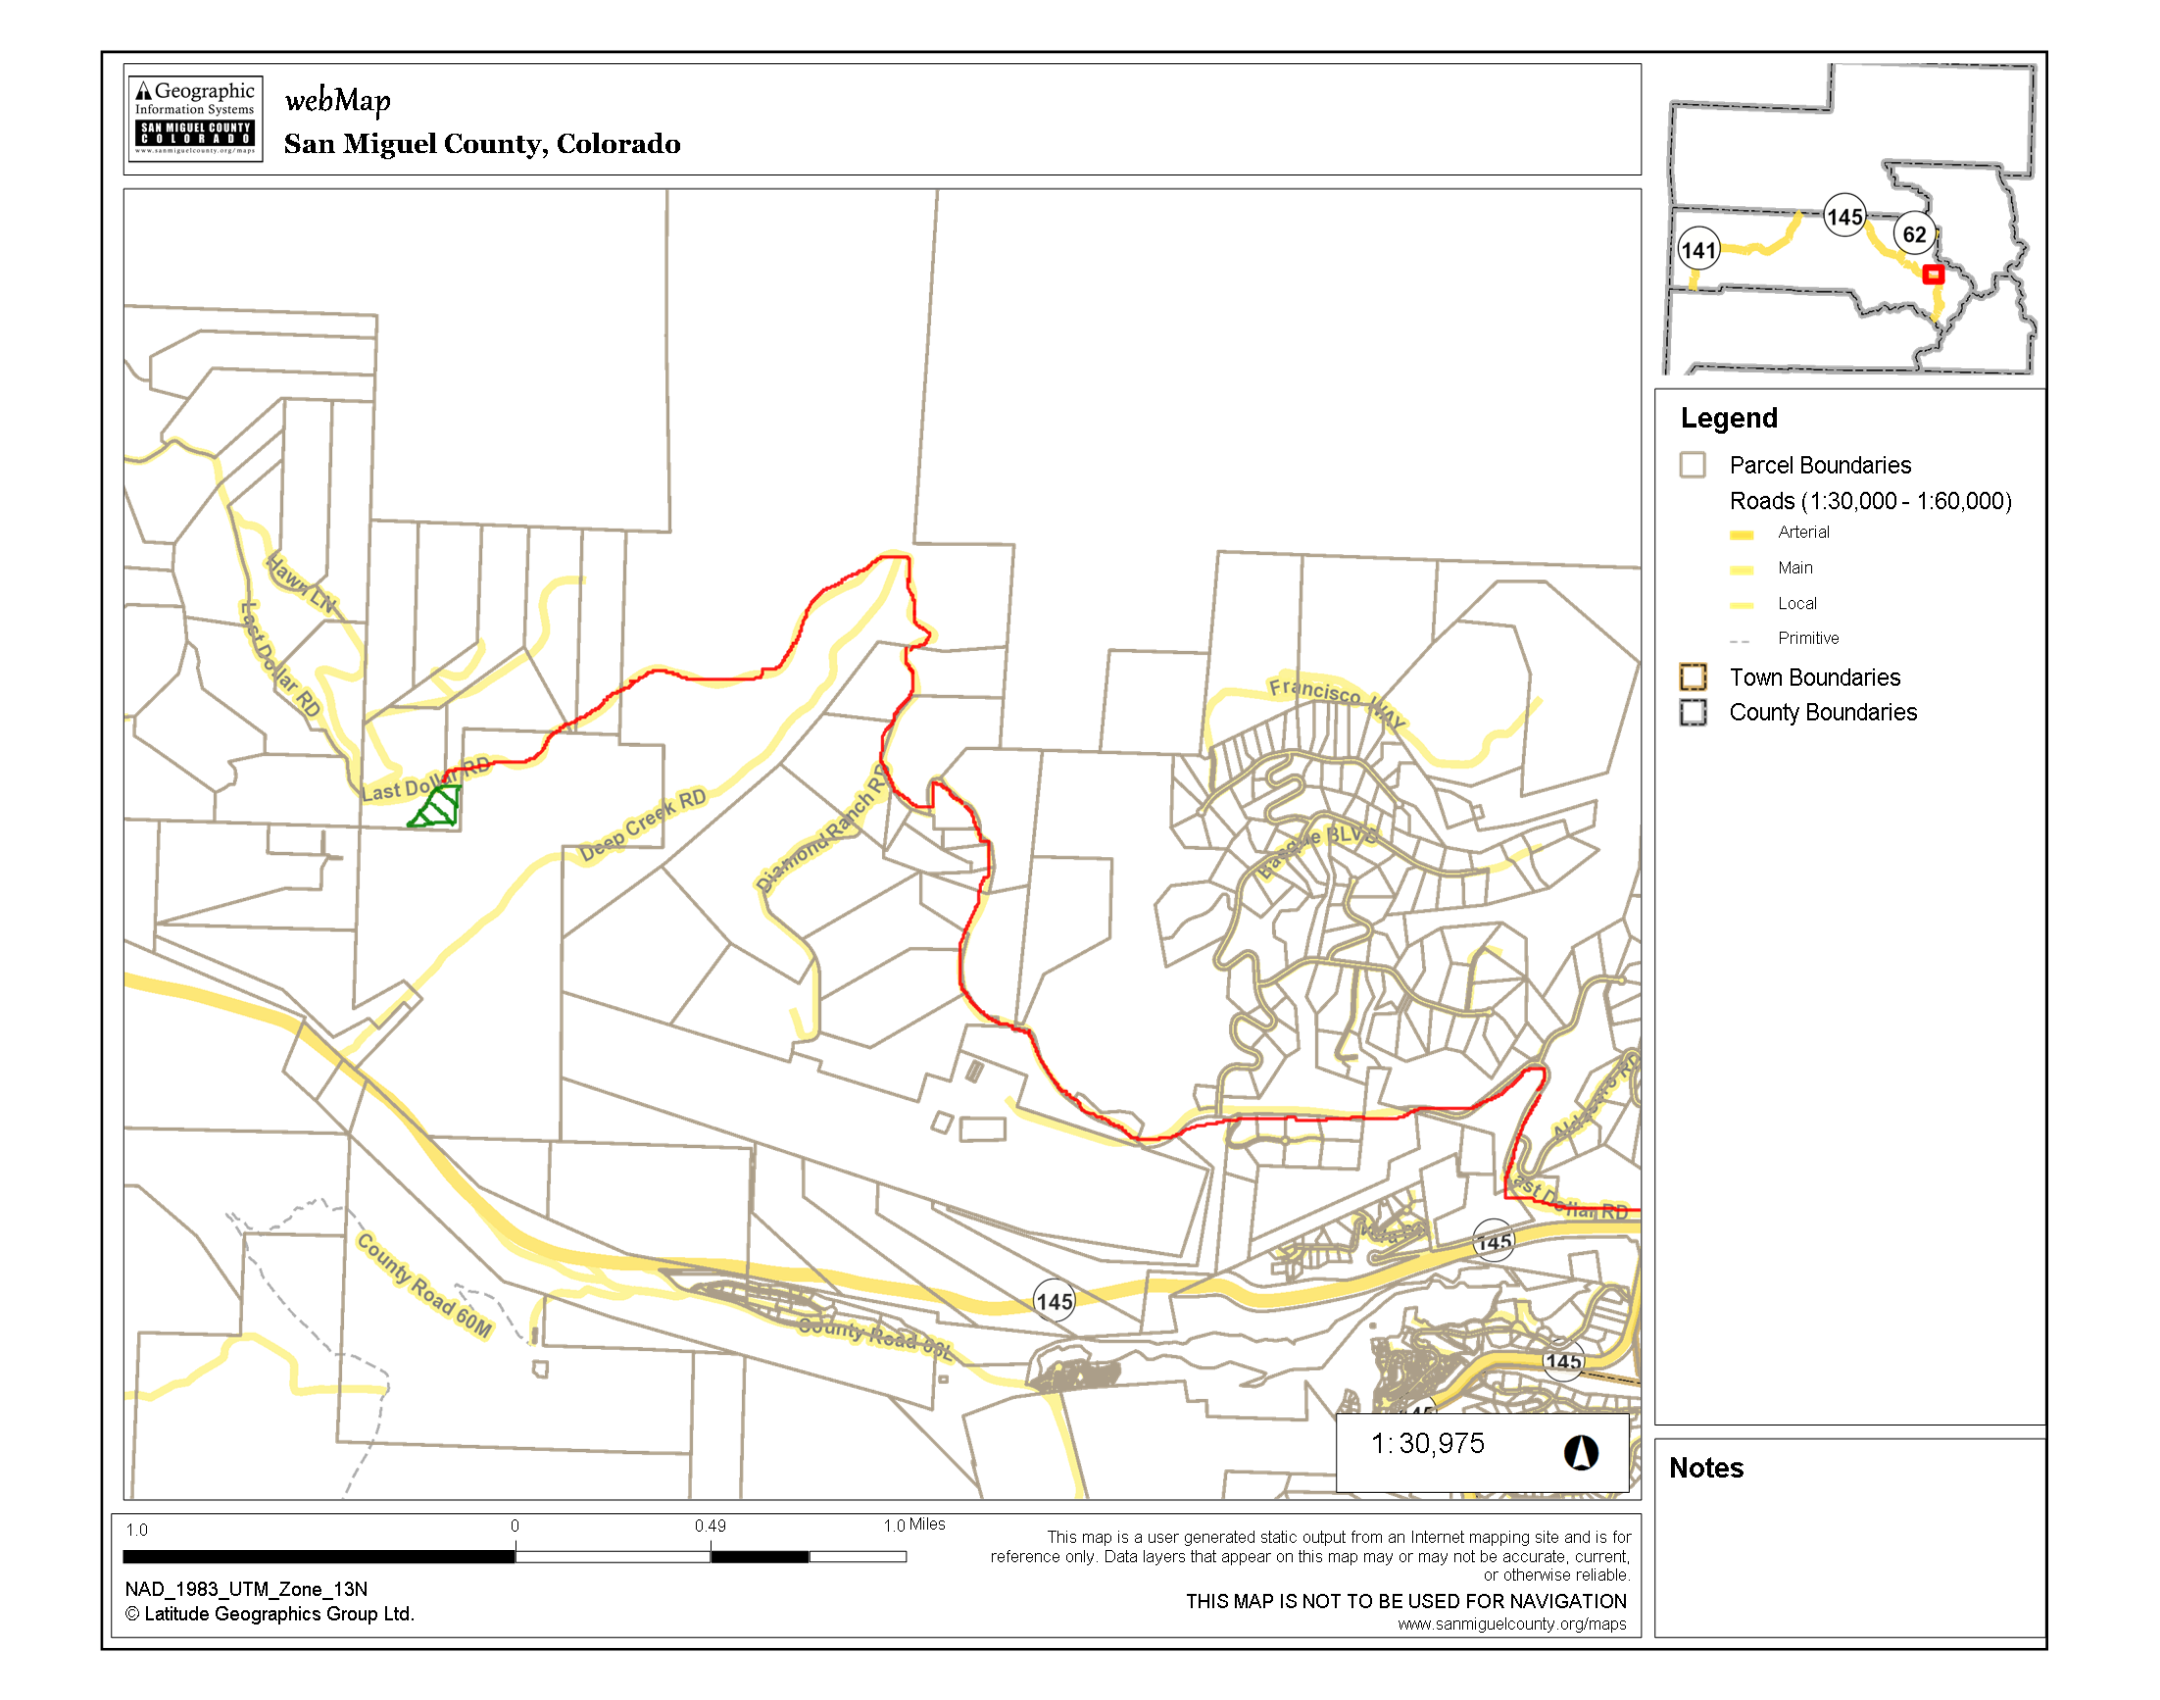 Map to wedding site. Road in red, site in green. Map begins at the airport turn off of highway 145 west of Telluride CO.